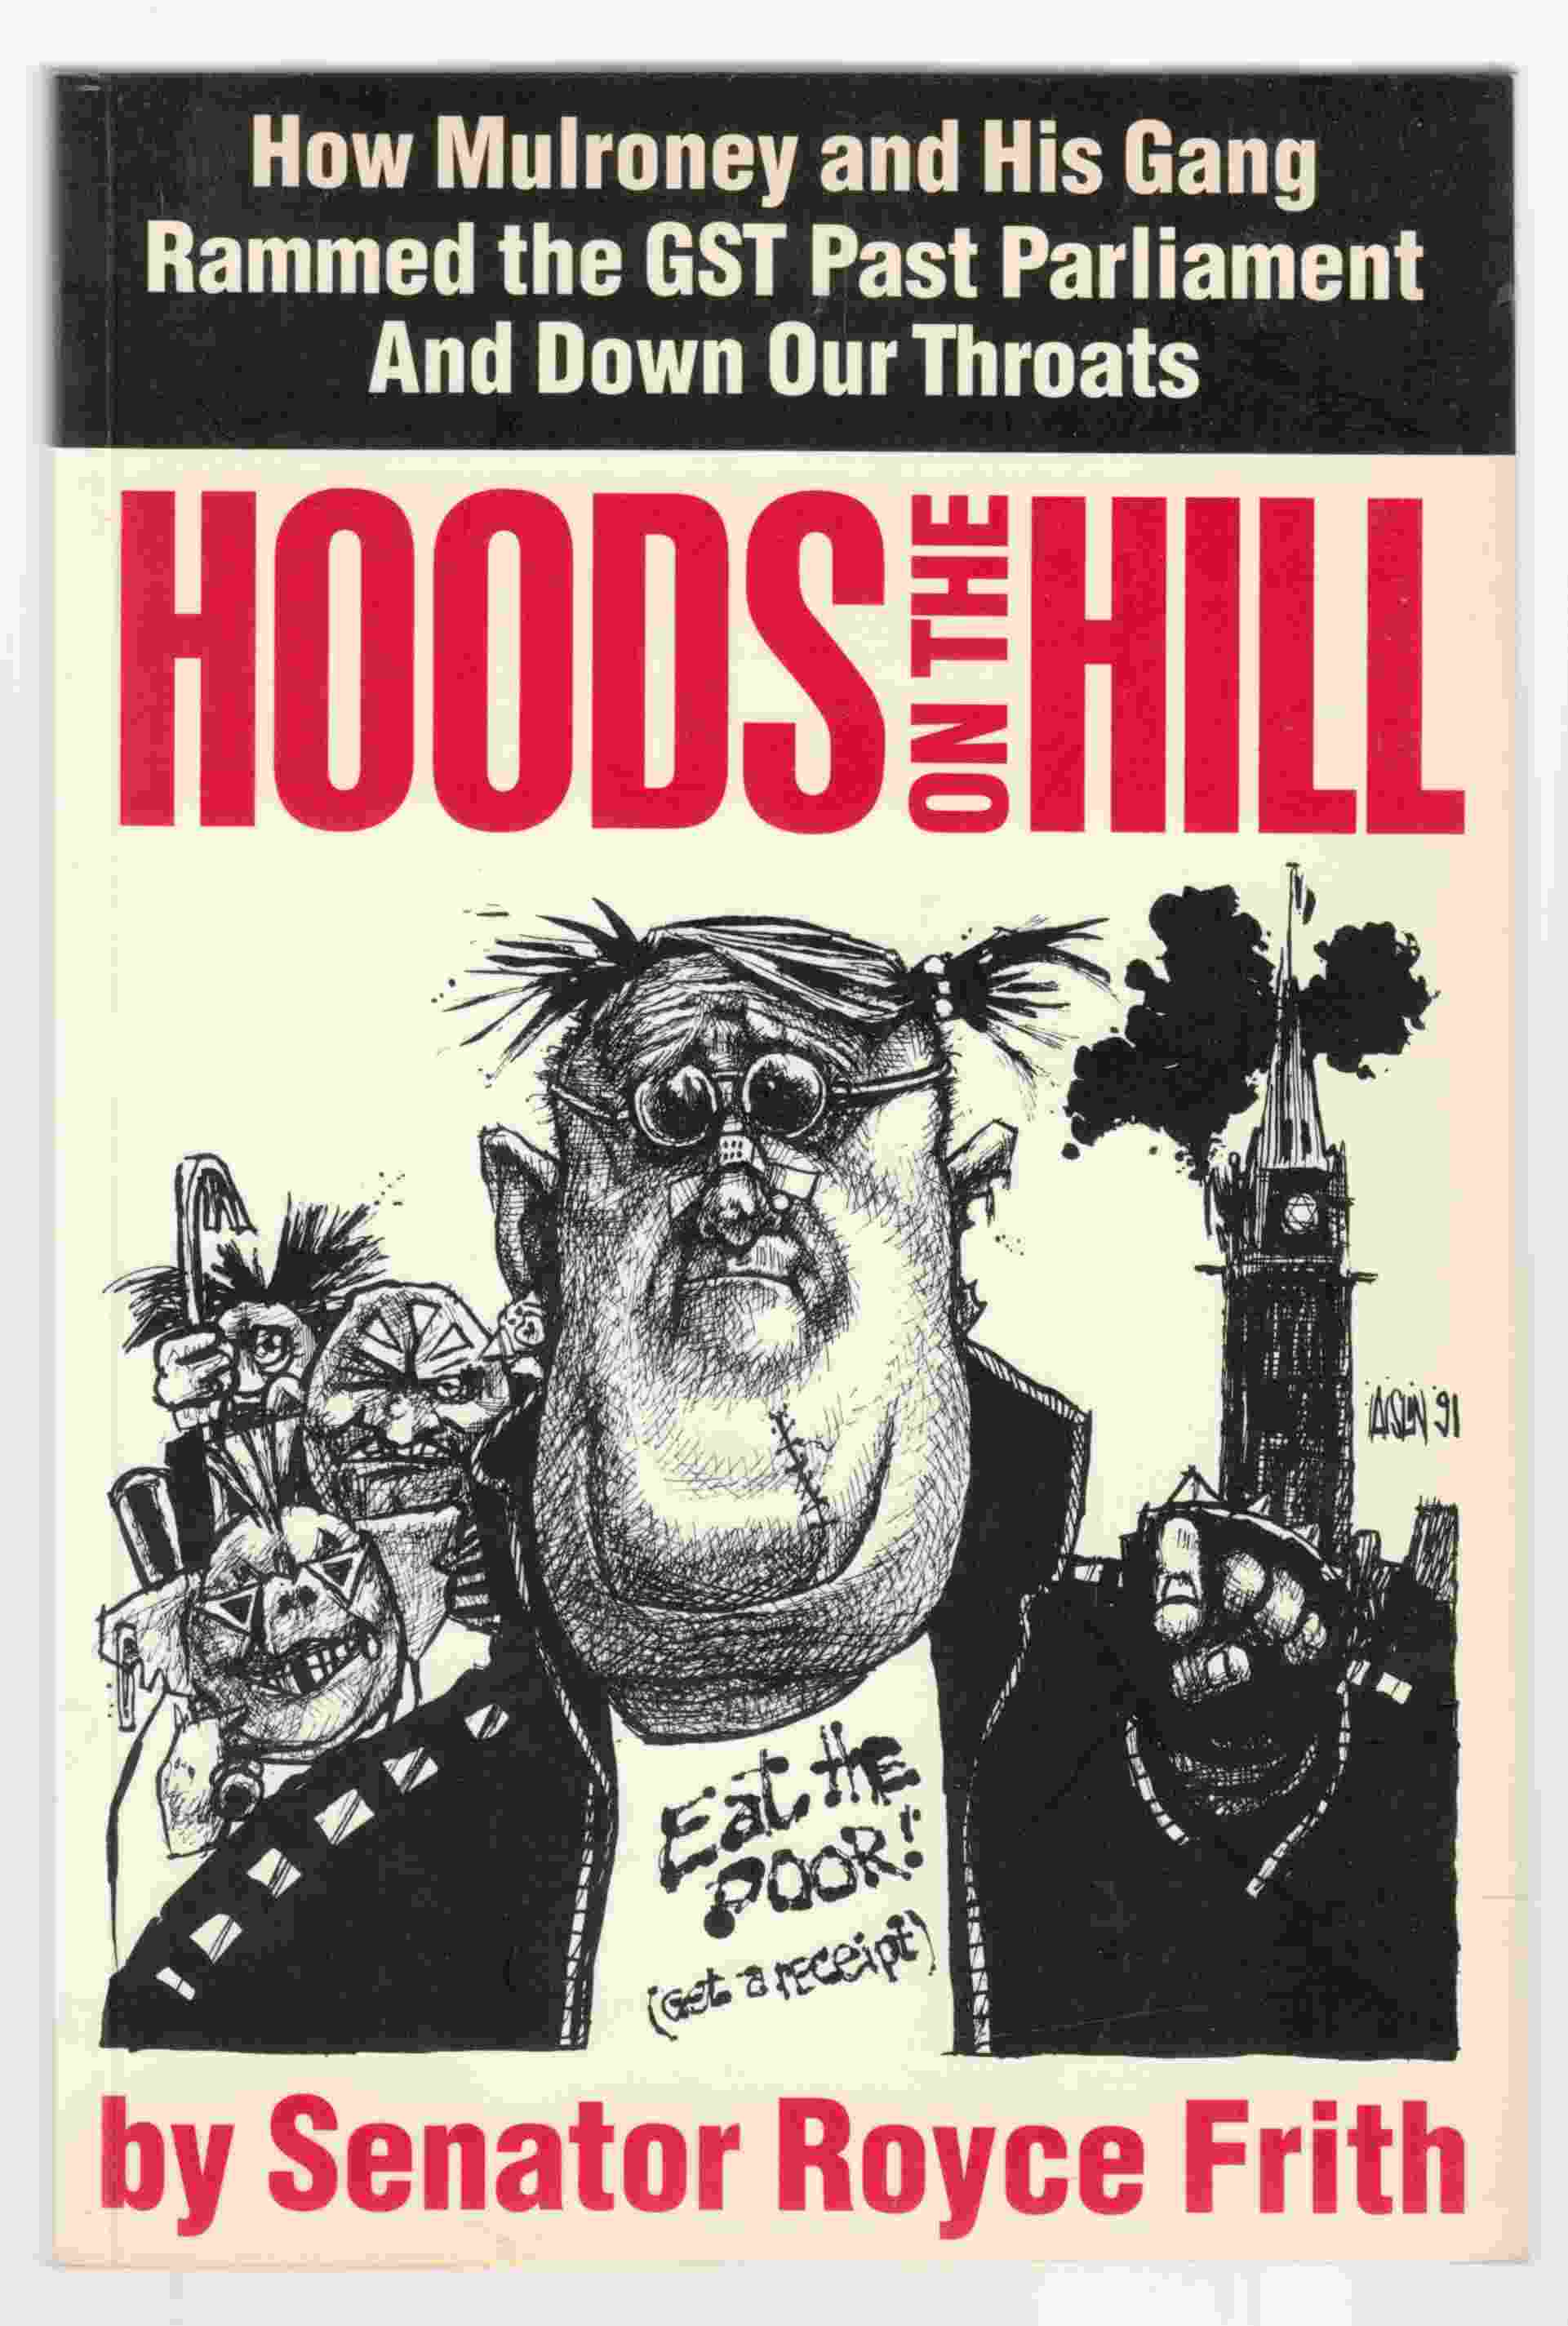 Image for Hoods on the Hill: How Mulroney and His Mob Rammed the GST Past Parliament and Down Our Throats